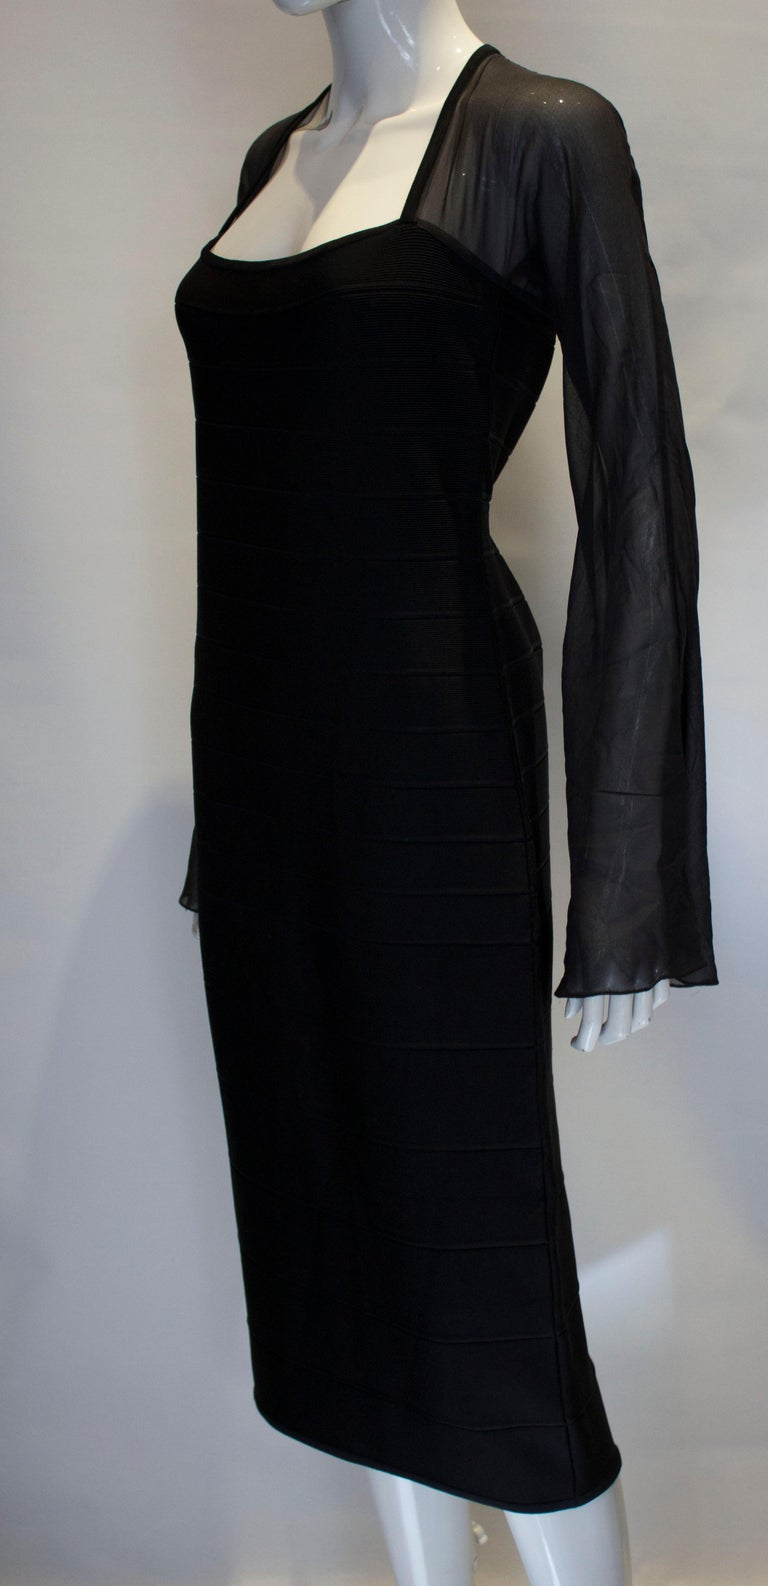 Vintage Herve Leger Evening Dress In Good Condition For Sale In London, GB